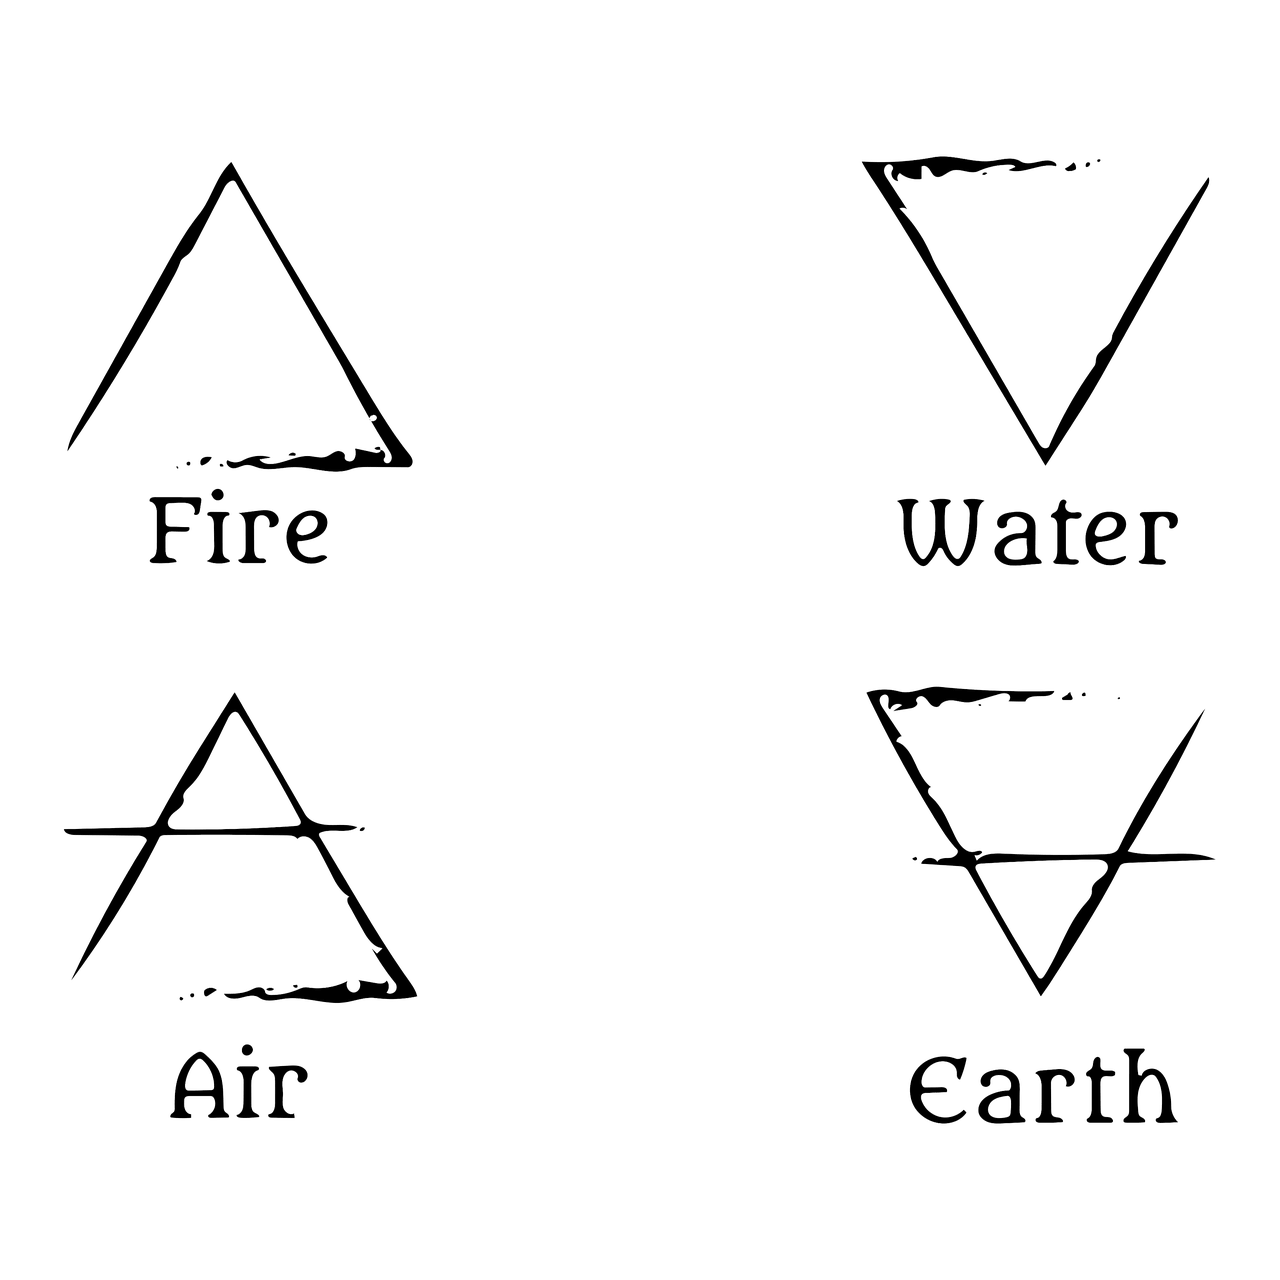 Four elements icons (fire, water, air, earth)